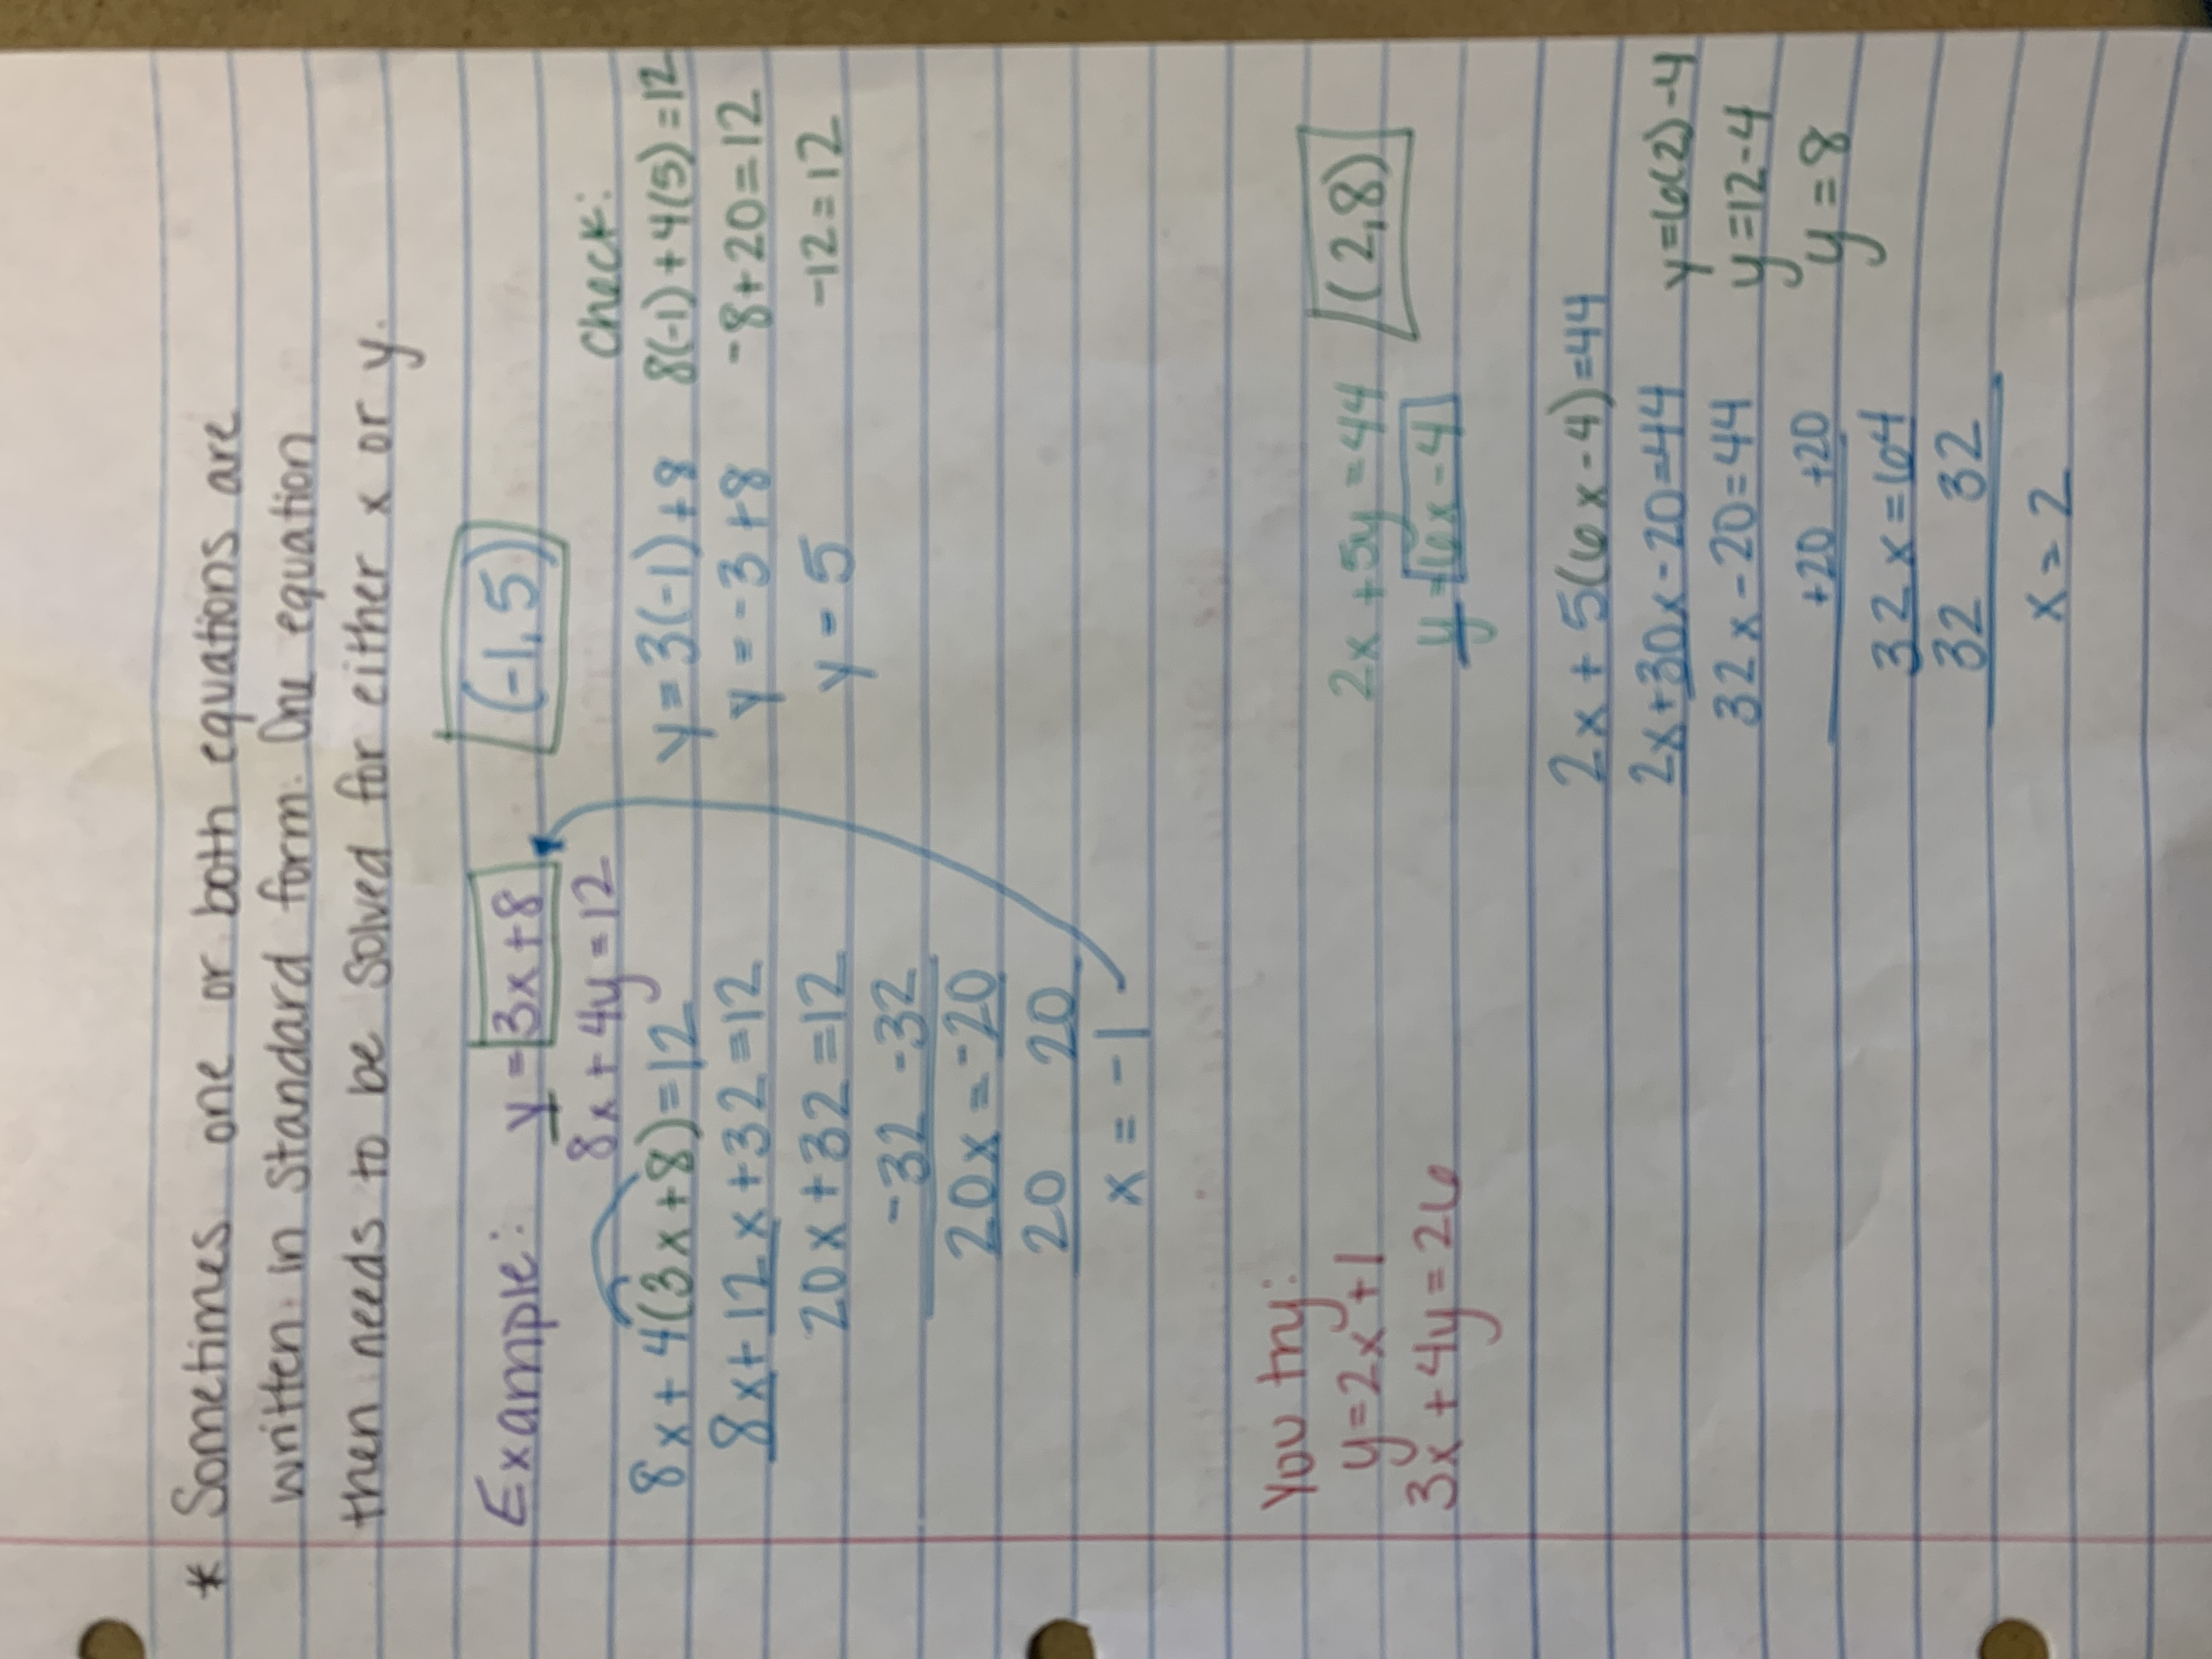 Graphing Vs Substitution Worksheet Answer Key Gina Wilson